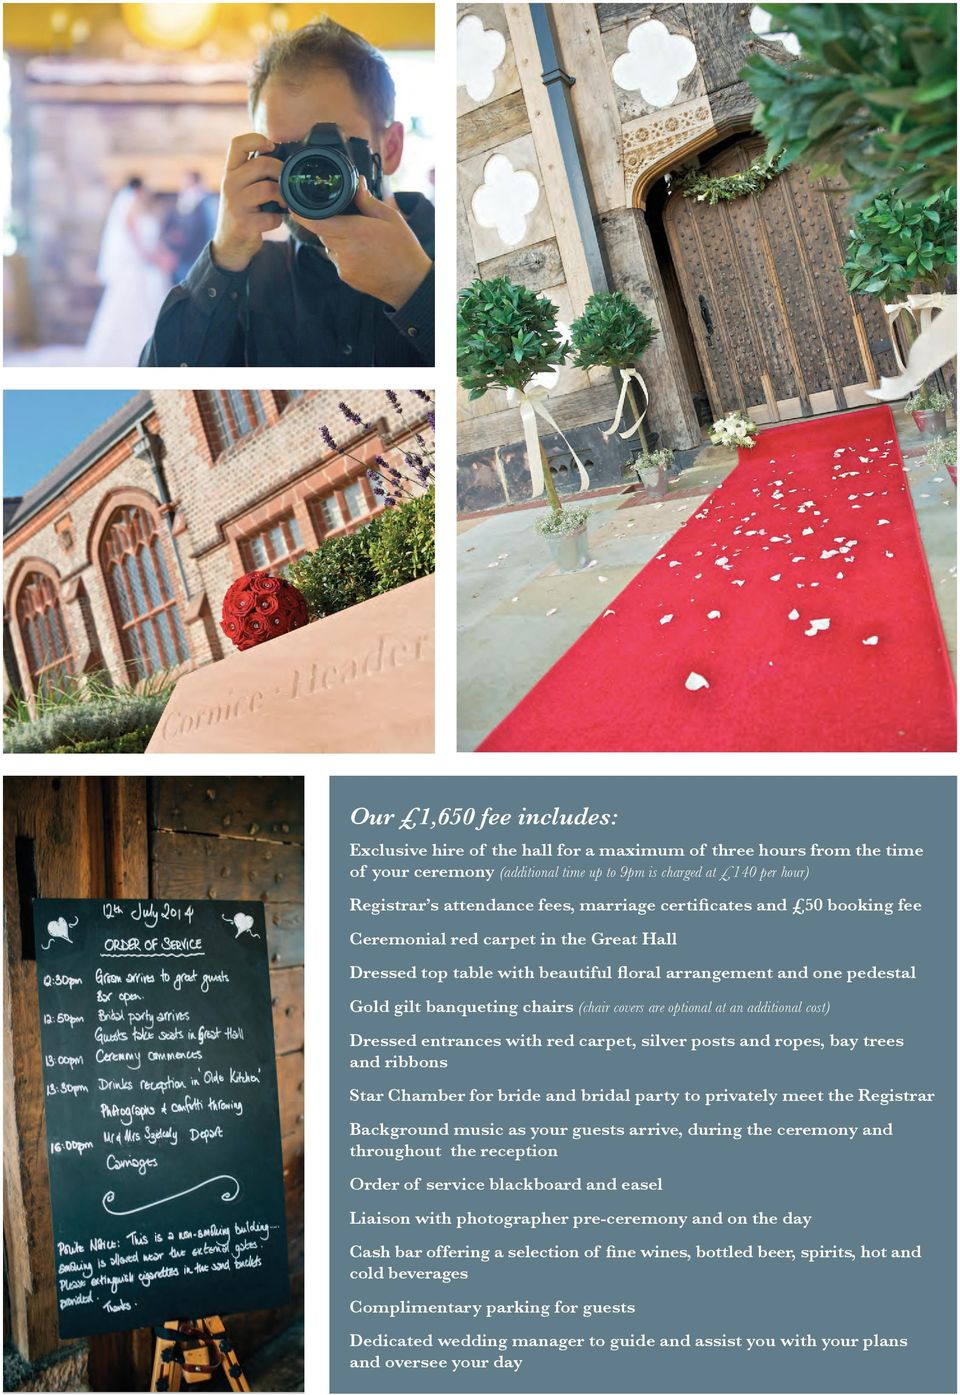 optional at an additional cost) Dressed entrances with red carpet, silver posts and ropes, bay trees and ribbons Star Chamber for bride and bridal party to privately meet the Registrar Background